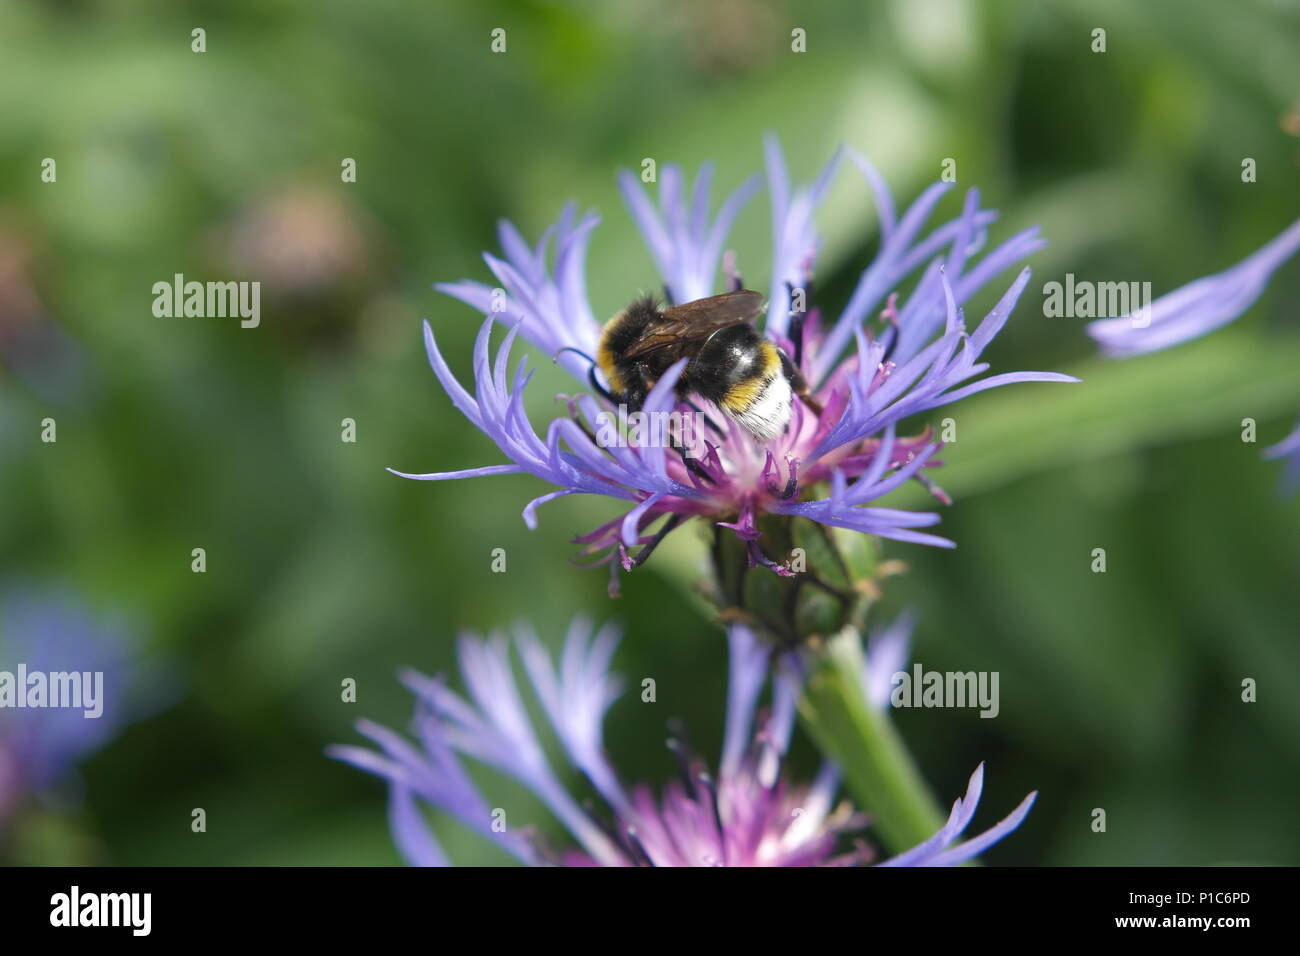 Bee on purple and pink wild flower - Stock Image